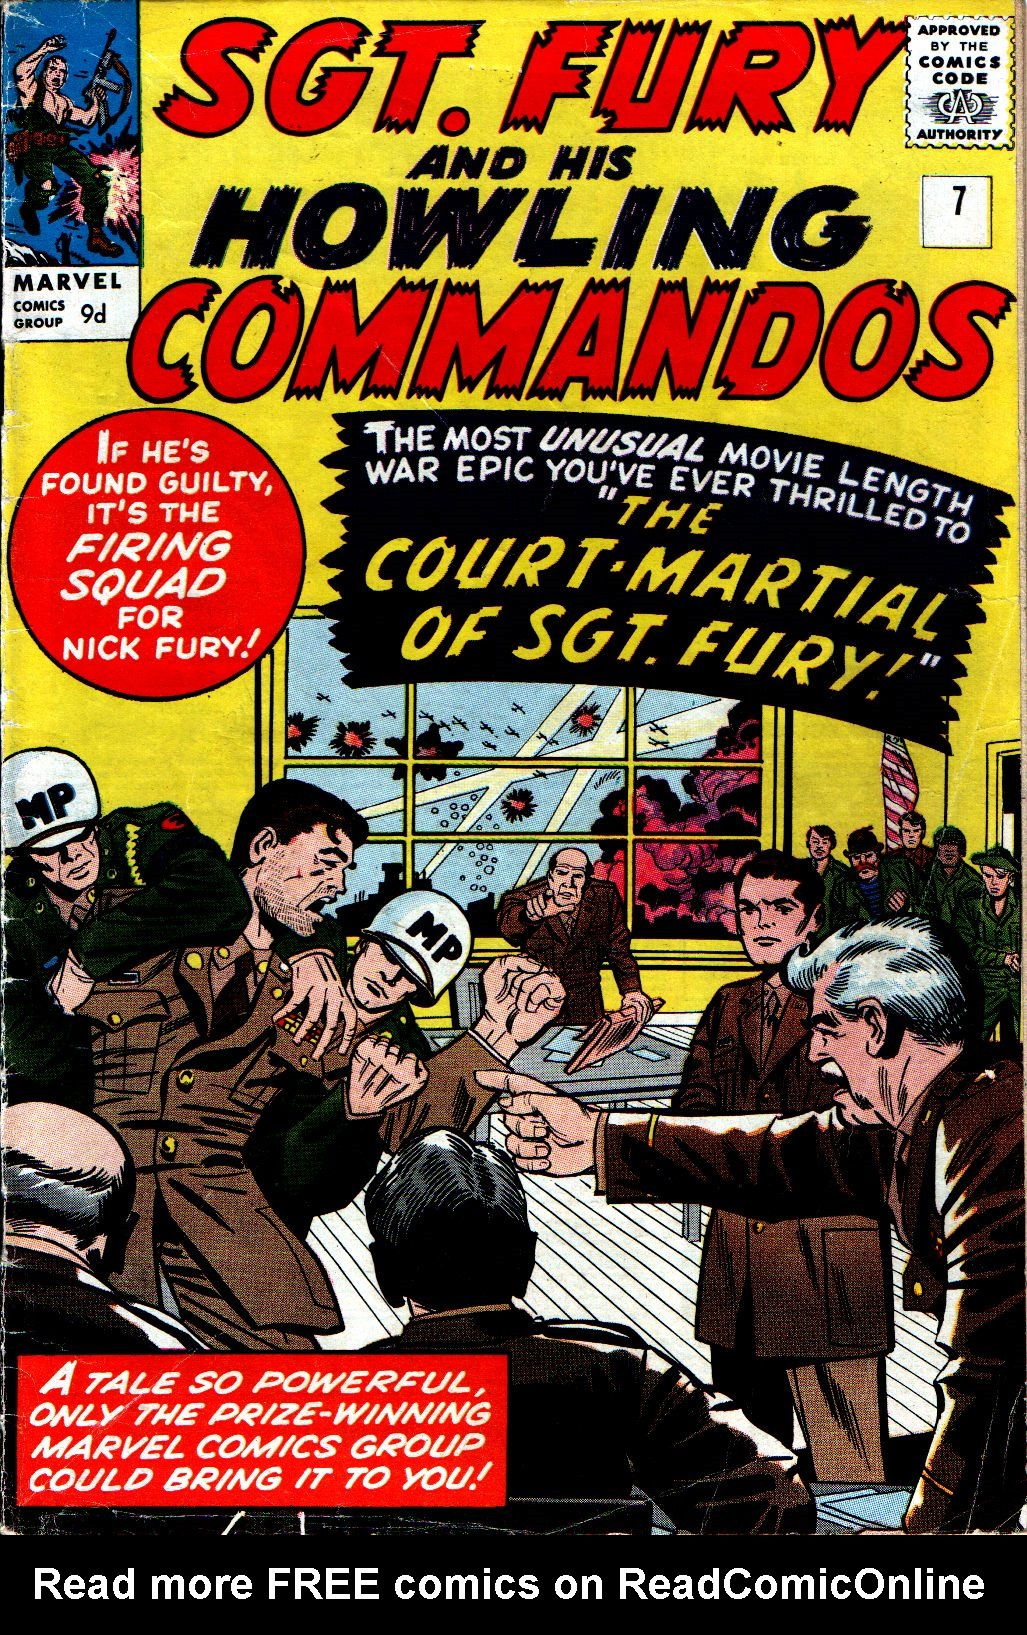 Read online Sgt. Fury comic -  Issue #7 - 1